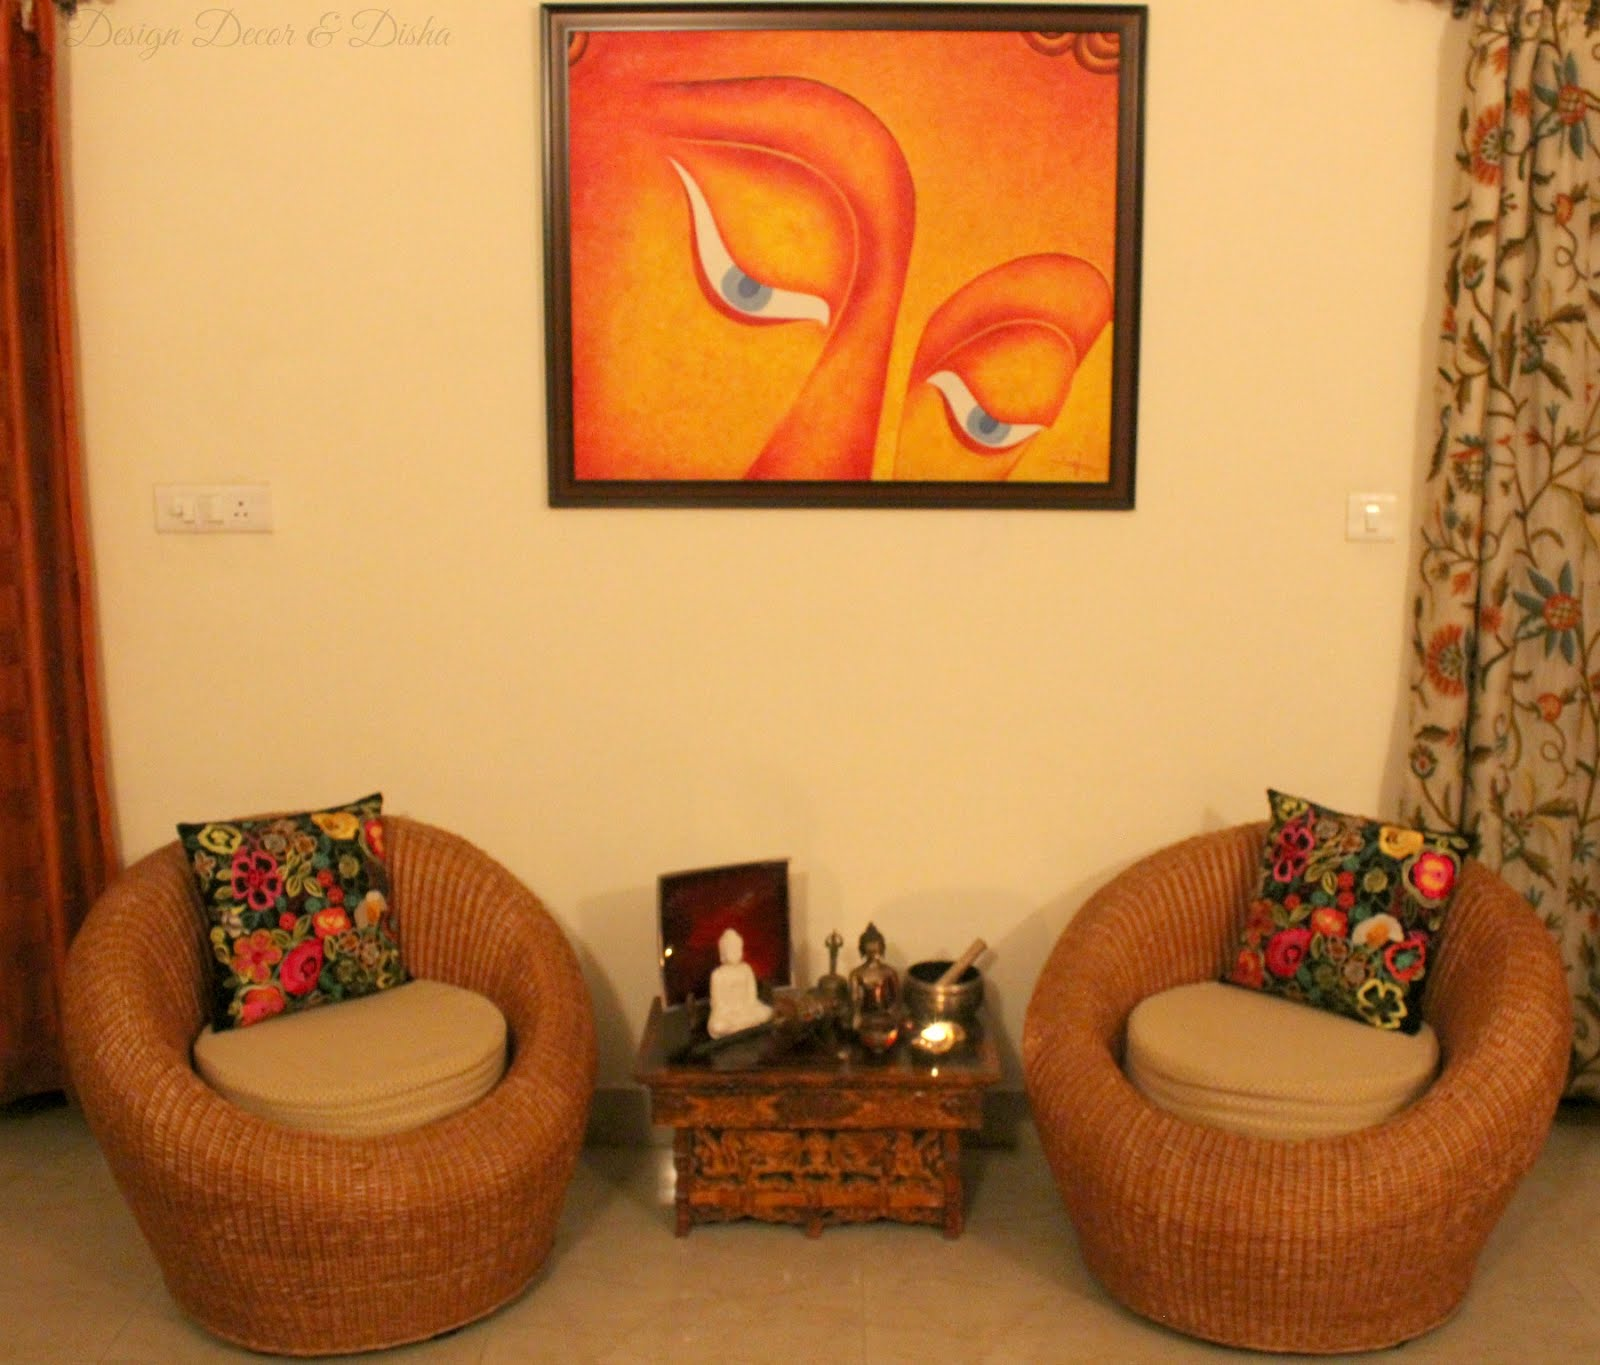 Design decor disha an indian design decor blog home for Www decorations home